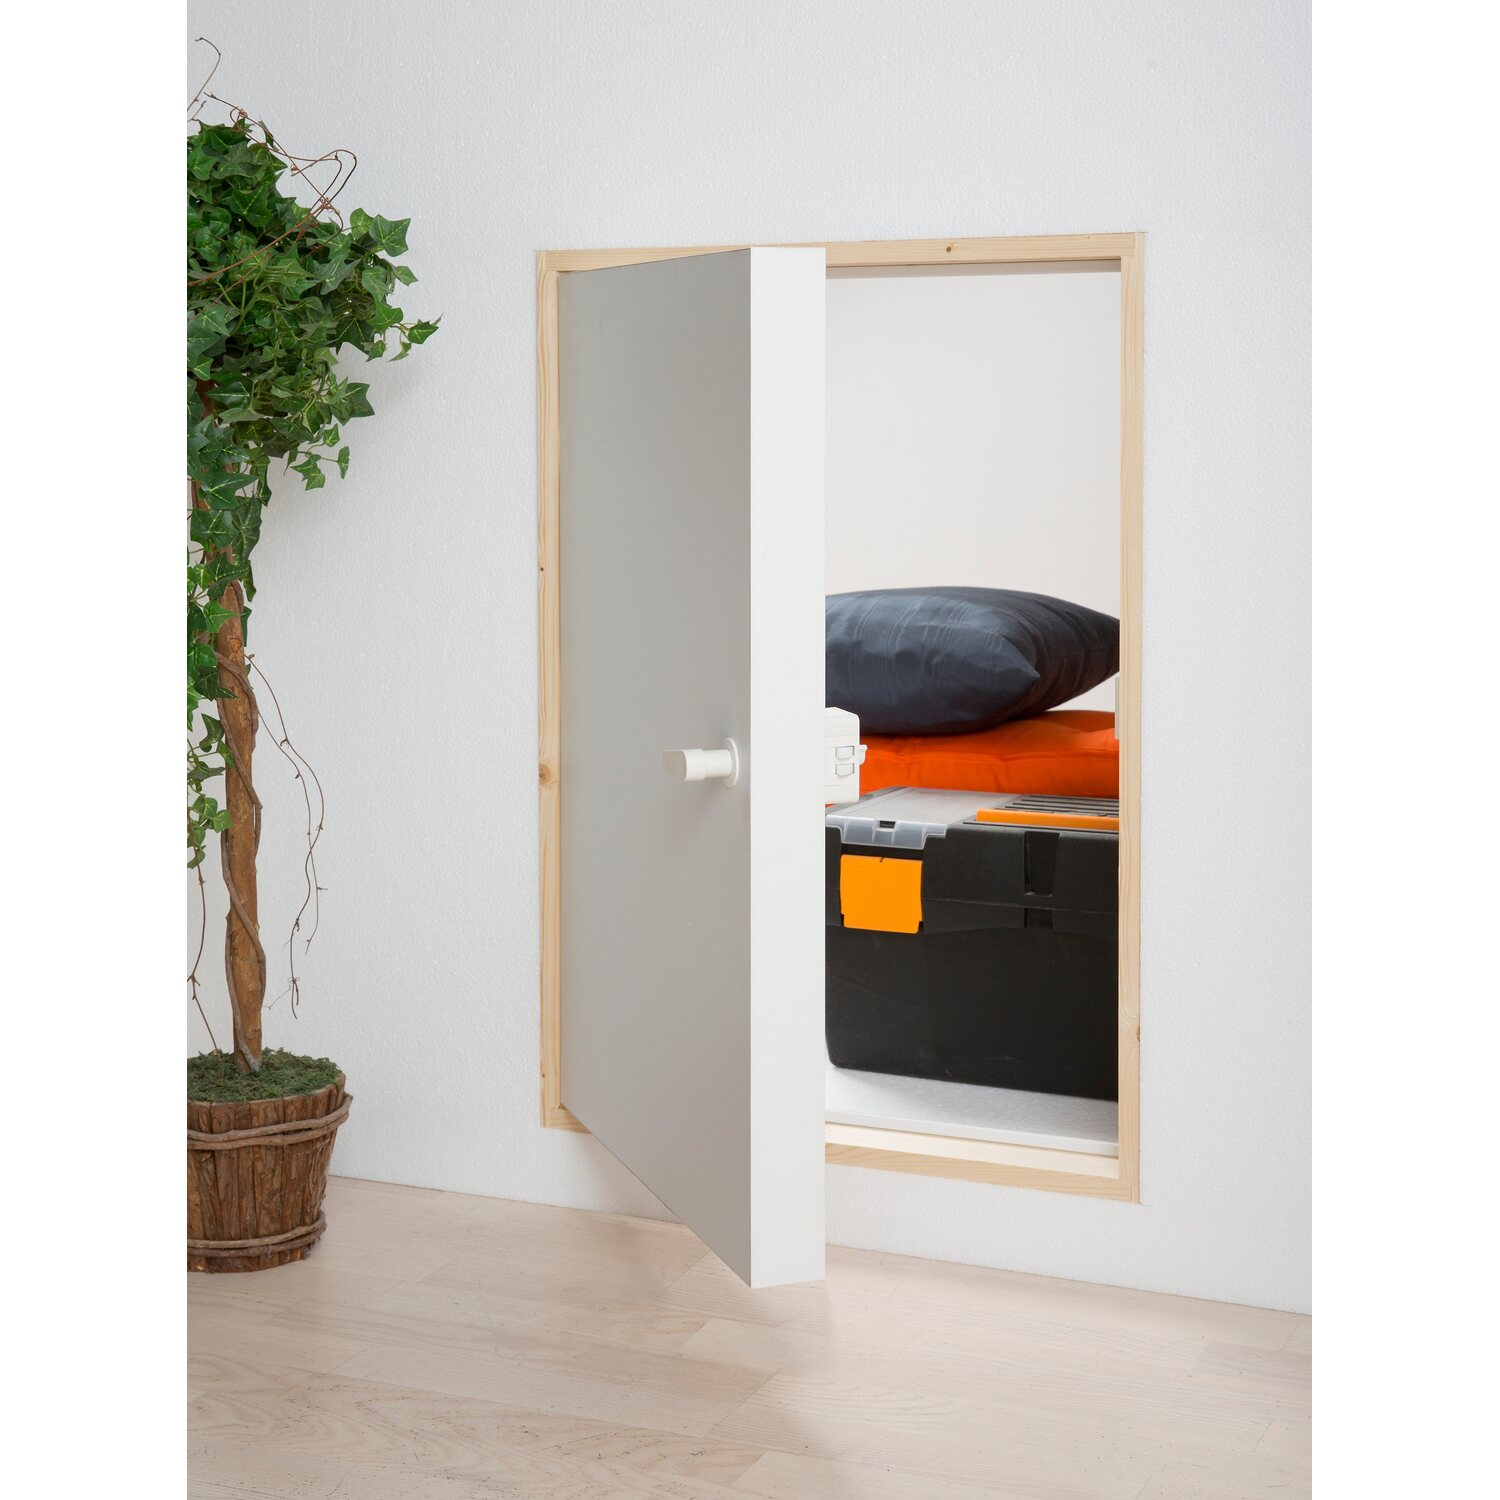 dolle kniestockt r mit w rmed mmung 80 cm x 56 cm x 11 5 cm kaufen bei obi. Black Bedroom Furniture Sets. Home Design Ideas